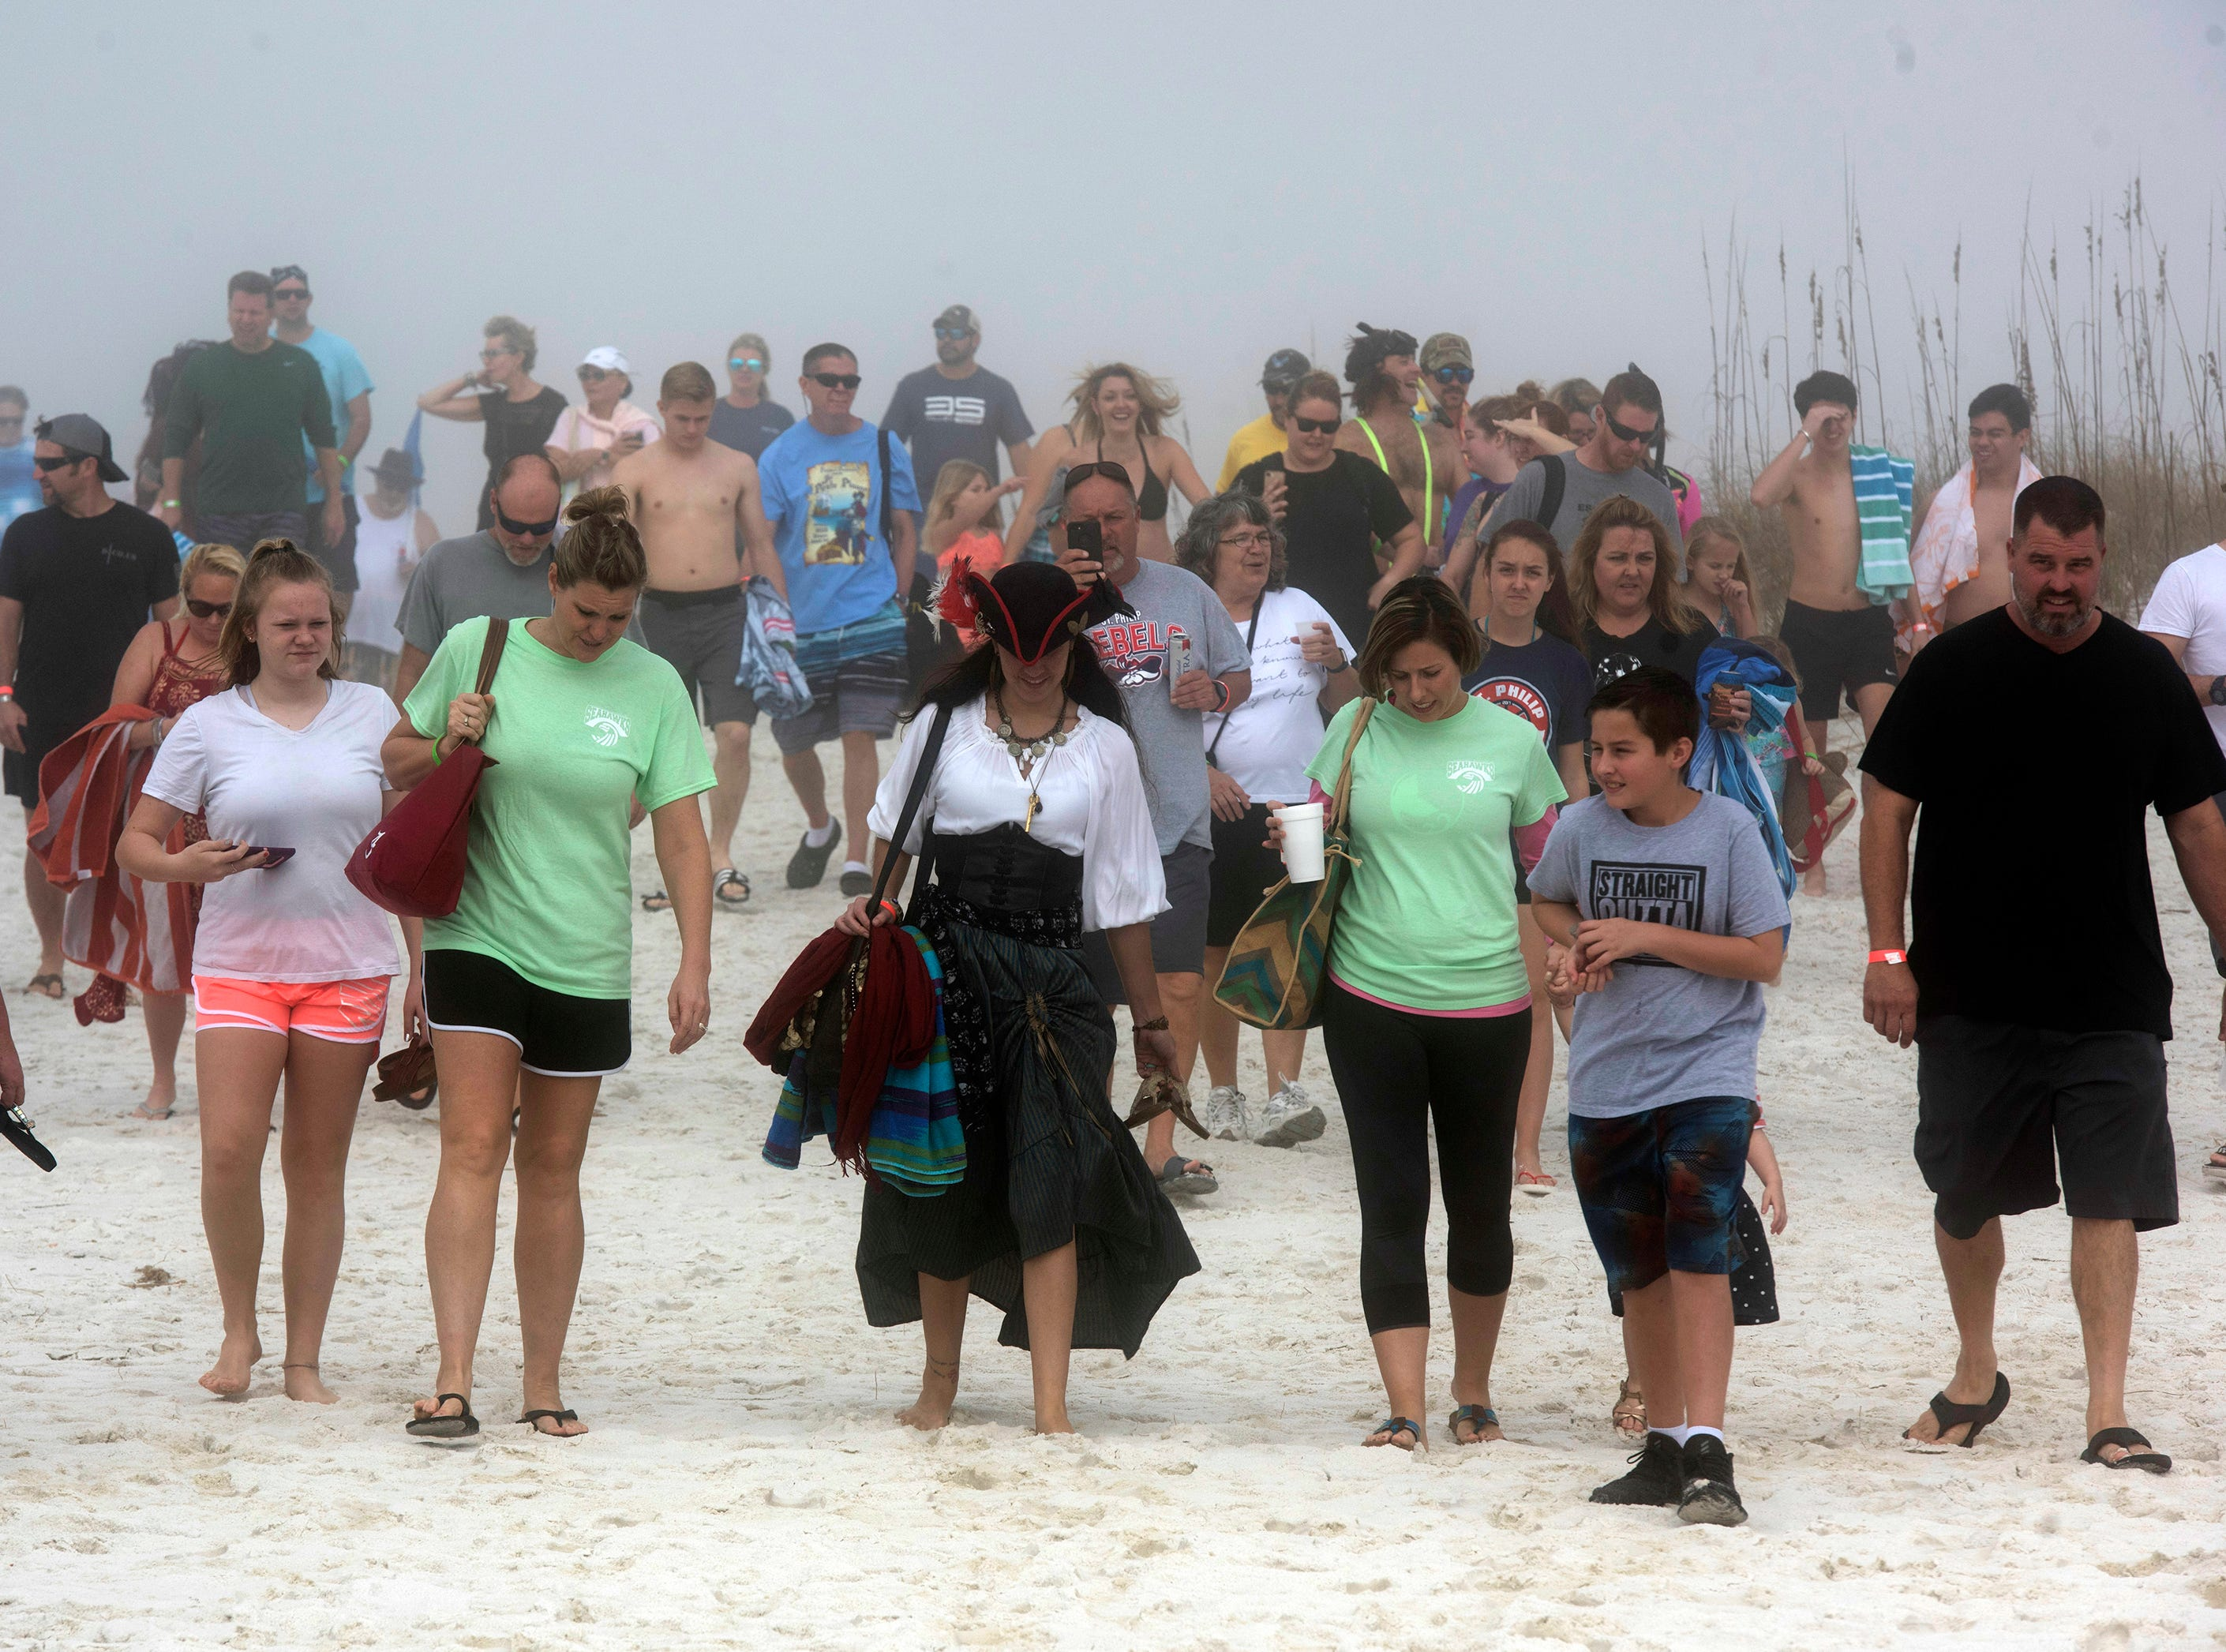 """Hundreds of thrill seekers all ages gathered on a foggy Navarre Beach Tuesday, Jan. 1, 2019 to take part in the 2nd annual Pirate Plunge. The New Year's Day activity put on by the Pirates of the Panhandle Social Club drew an estimated crowd over 450 people, organizers, """"Jersey"""" Jerry Foster said. The event benefits the Weekend Food Program of Navarre."""